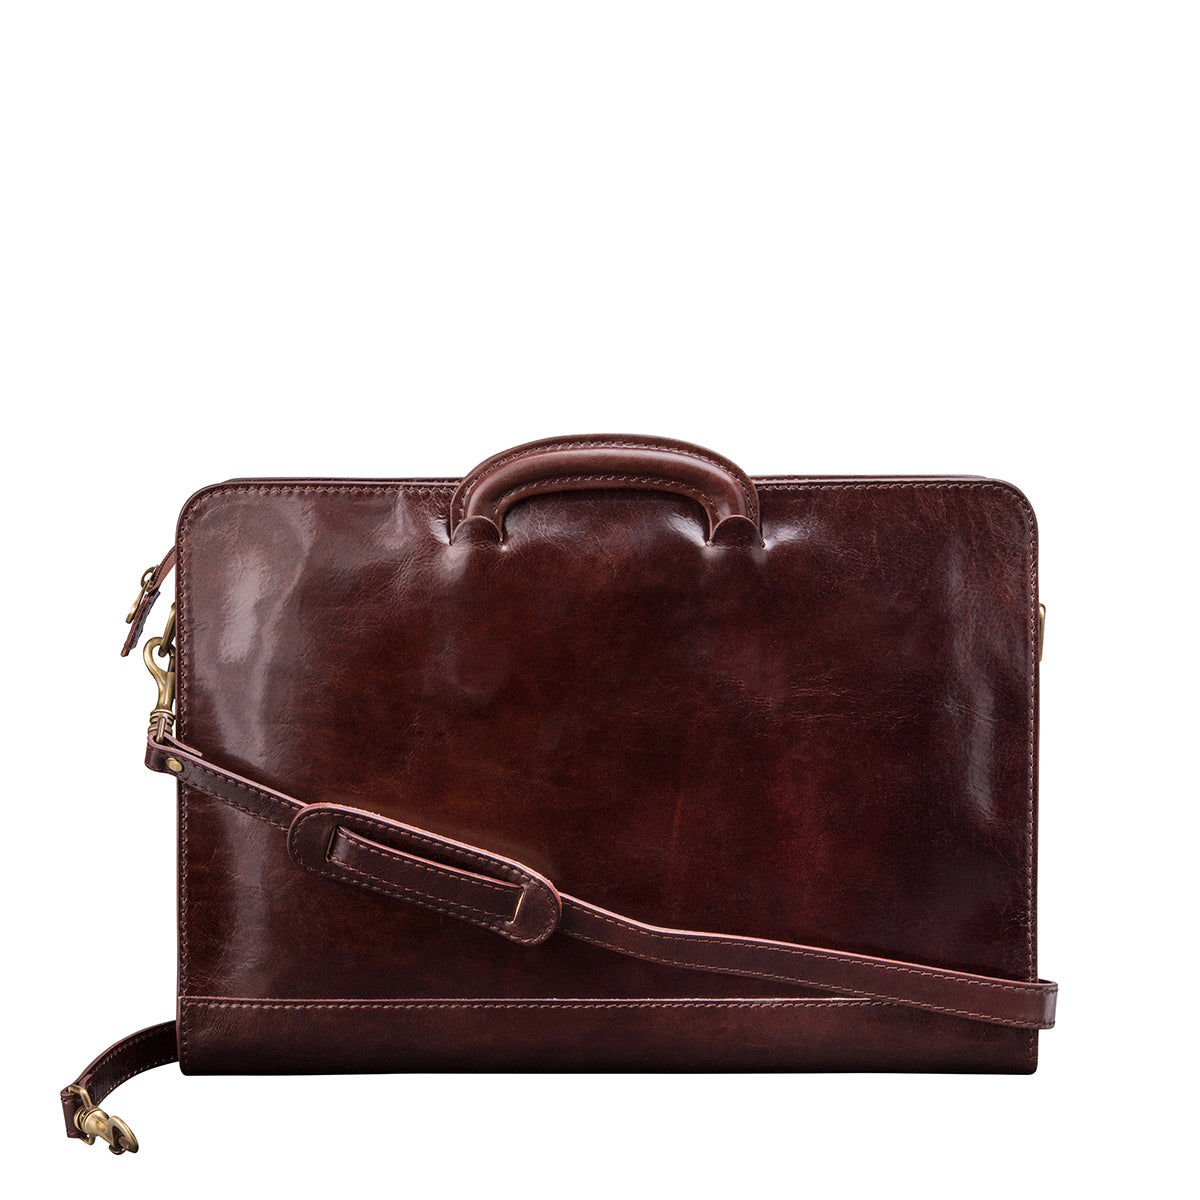 Image 3 of the 'Barolo' Dark Chocolate Veg-Tanned Leather Prestige Folder